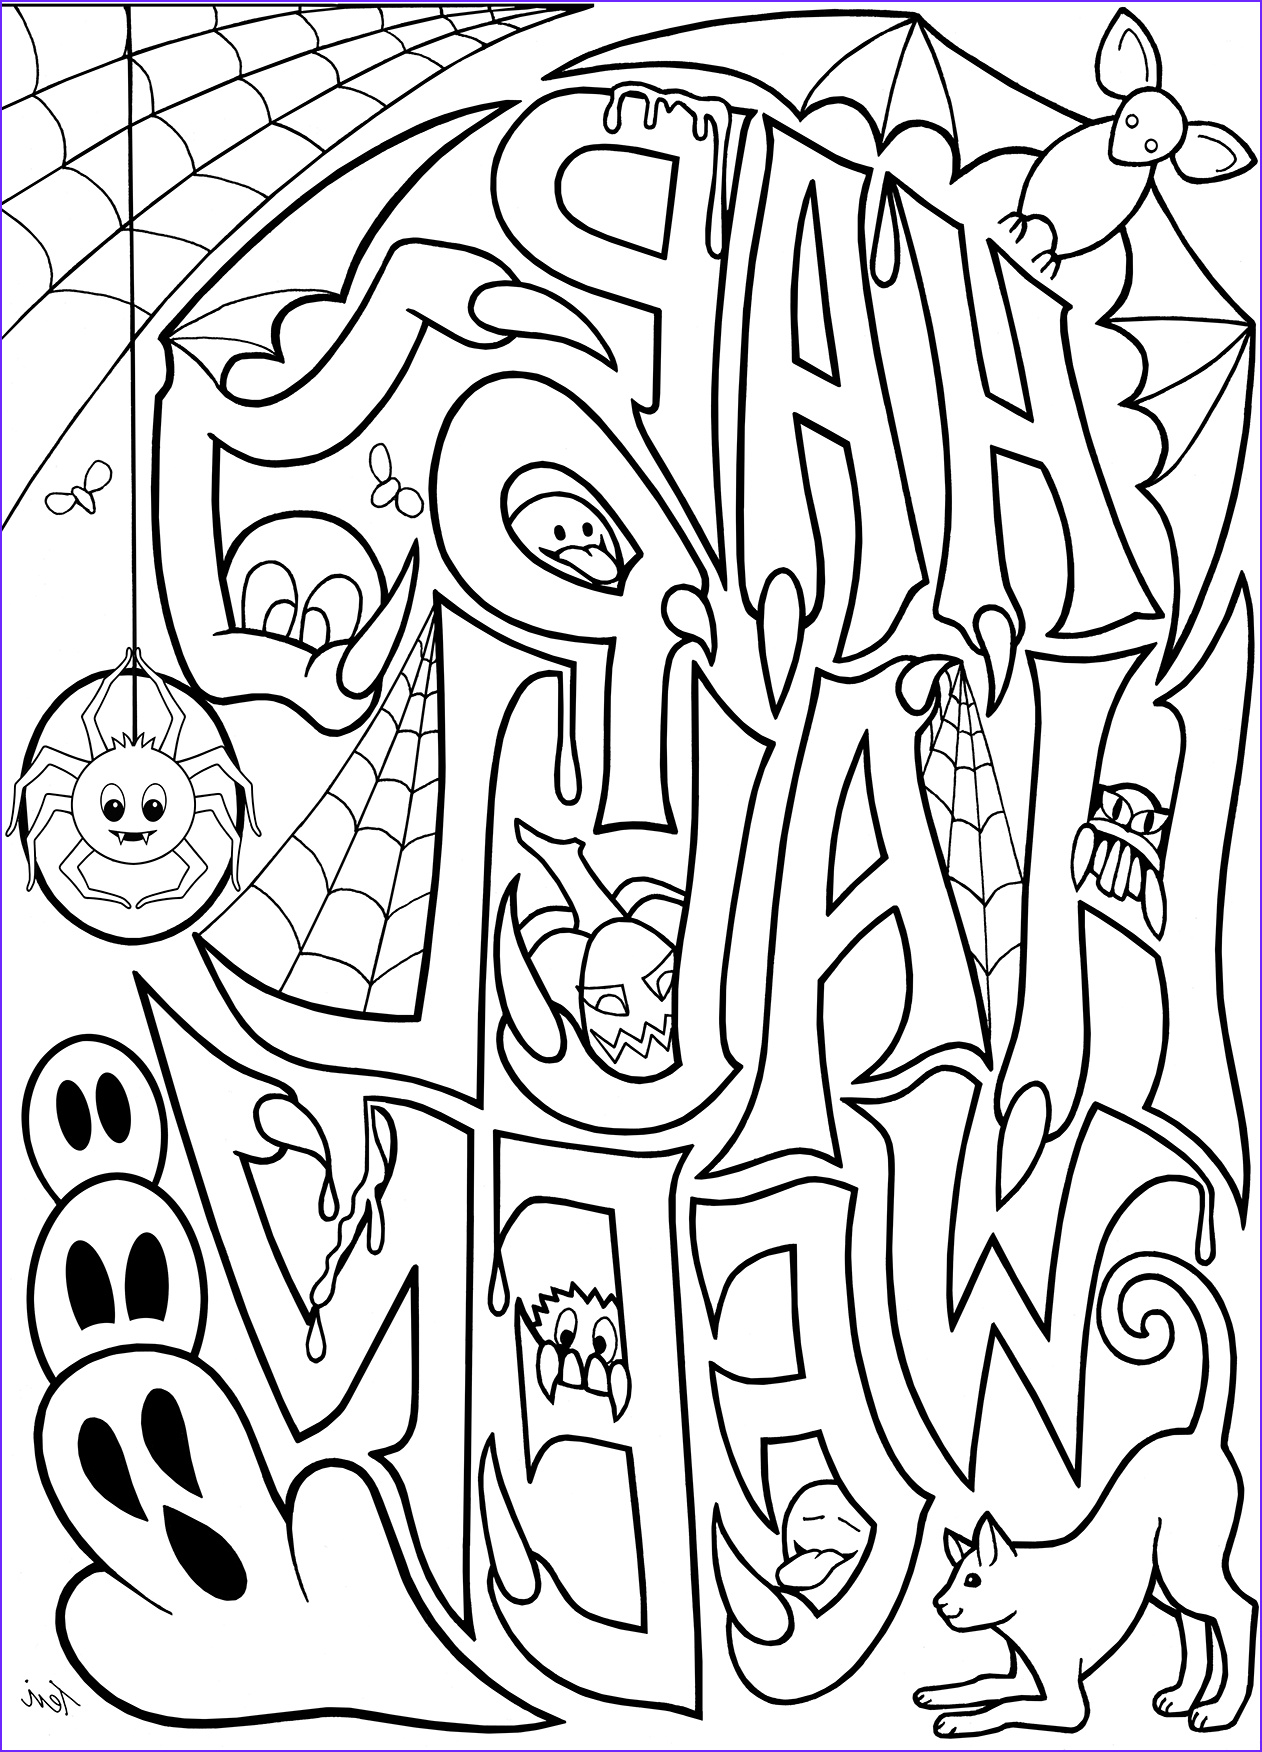 Halloween Coloring Unique Image Free Adult Coloring Book Pages Happy Halloween by Blue